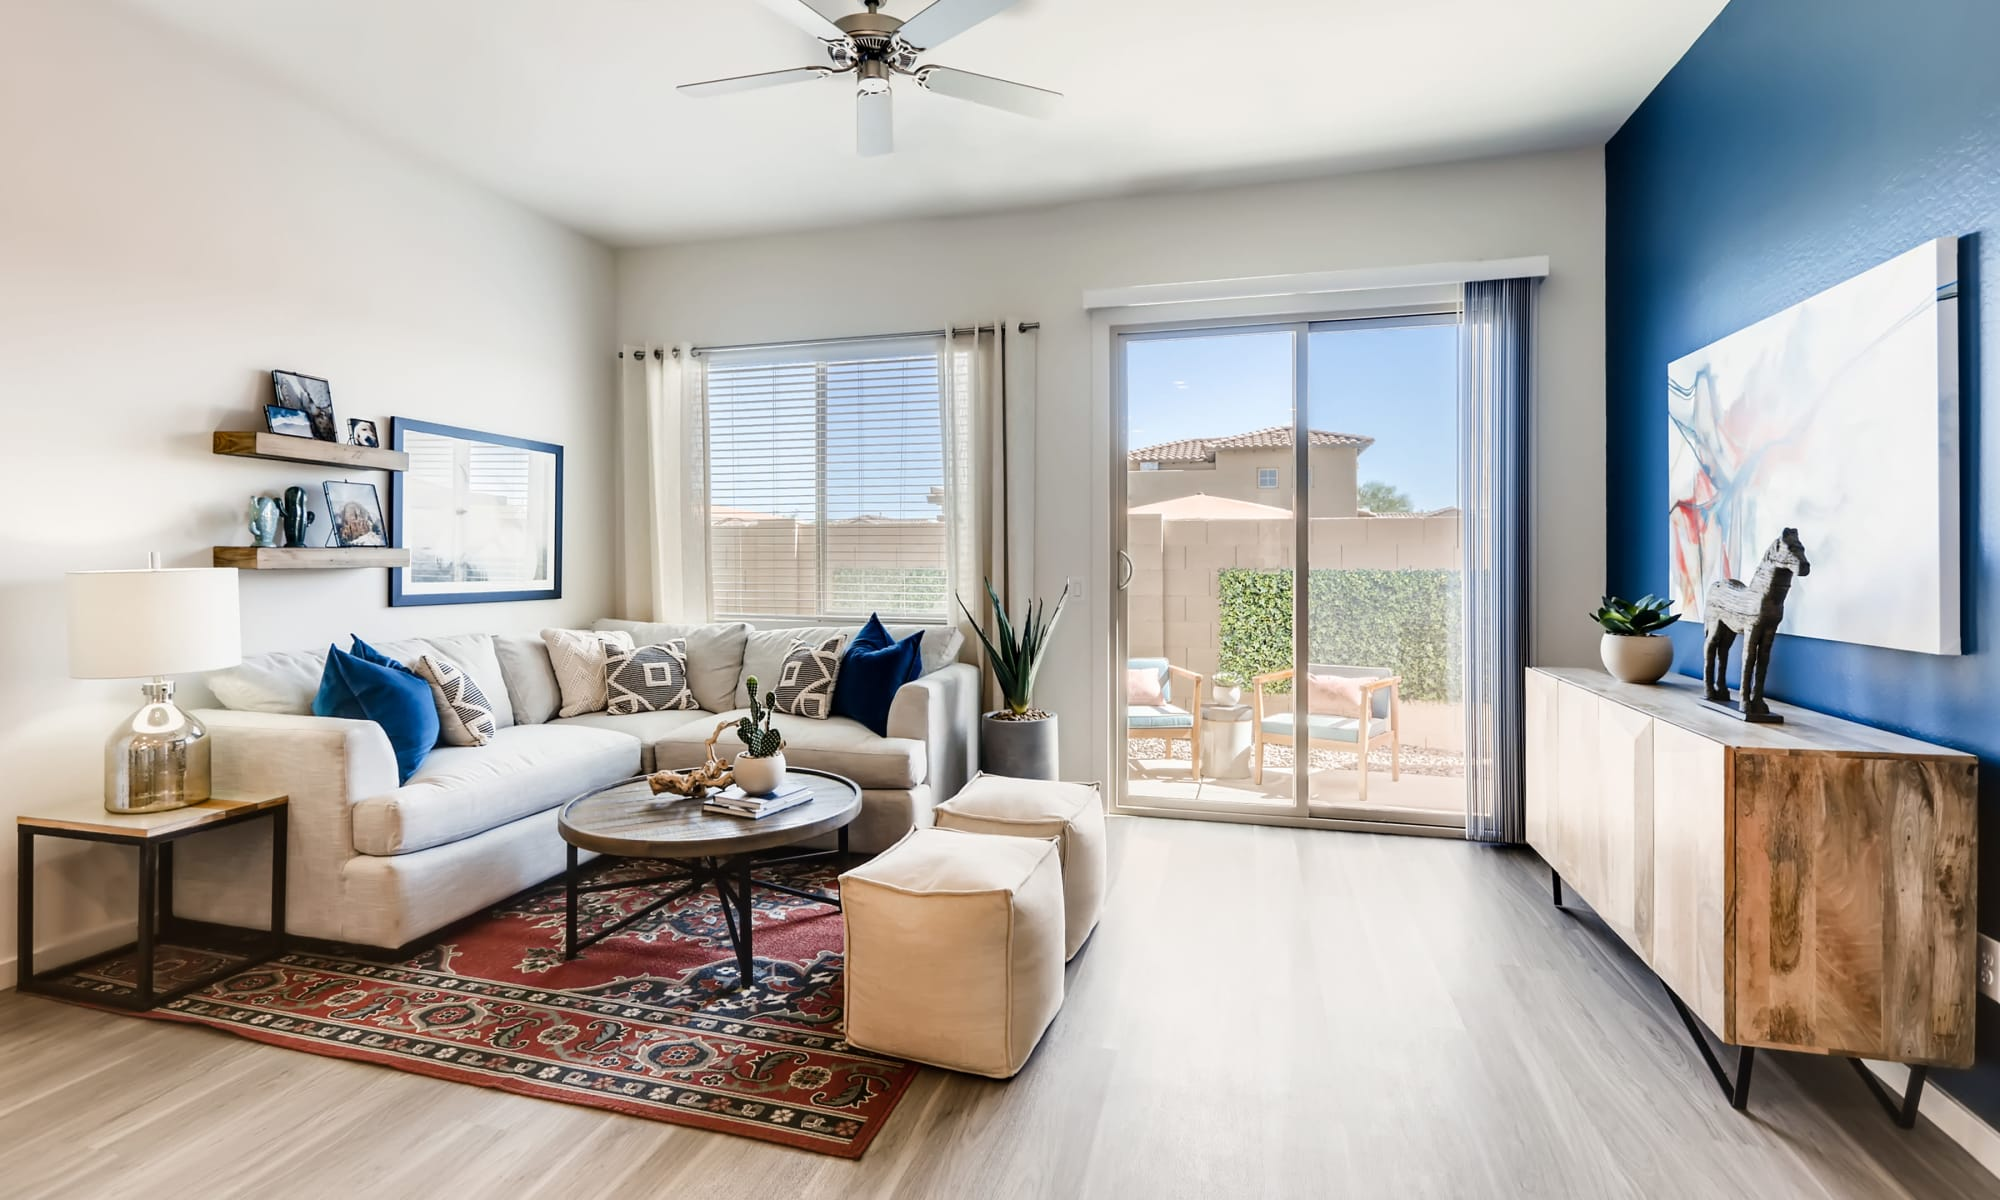 Apartment homes at Avilla Lago in Peoria, Arizona